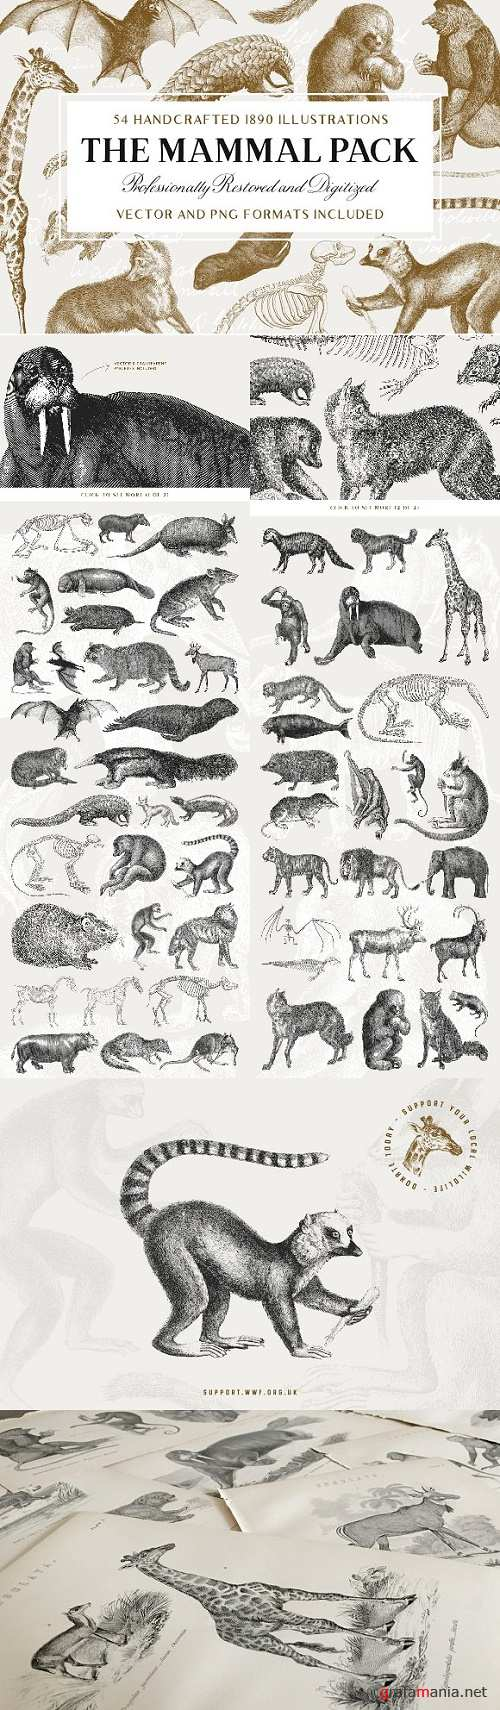 54 Handcrafted Mammal Illustrations - 2511172